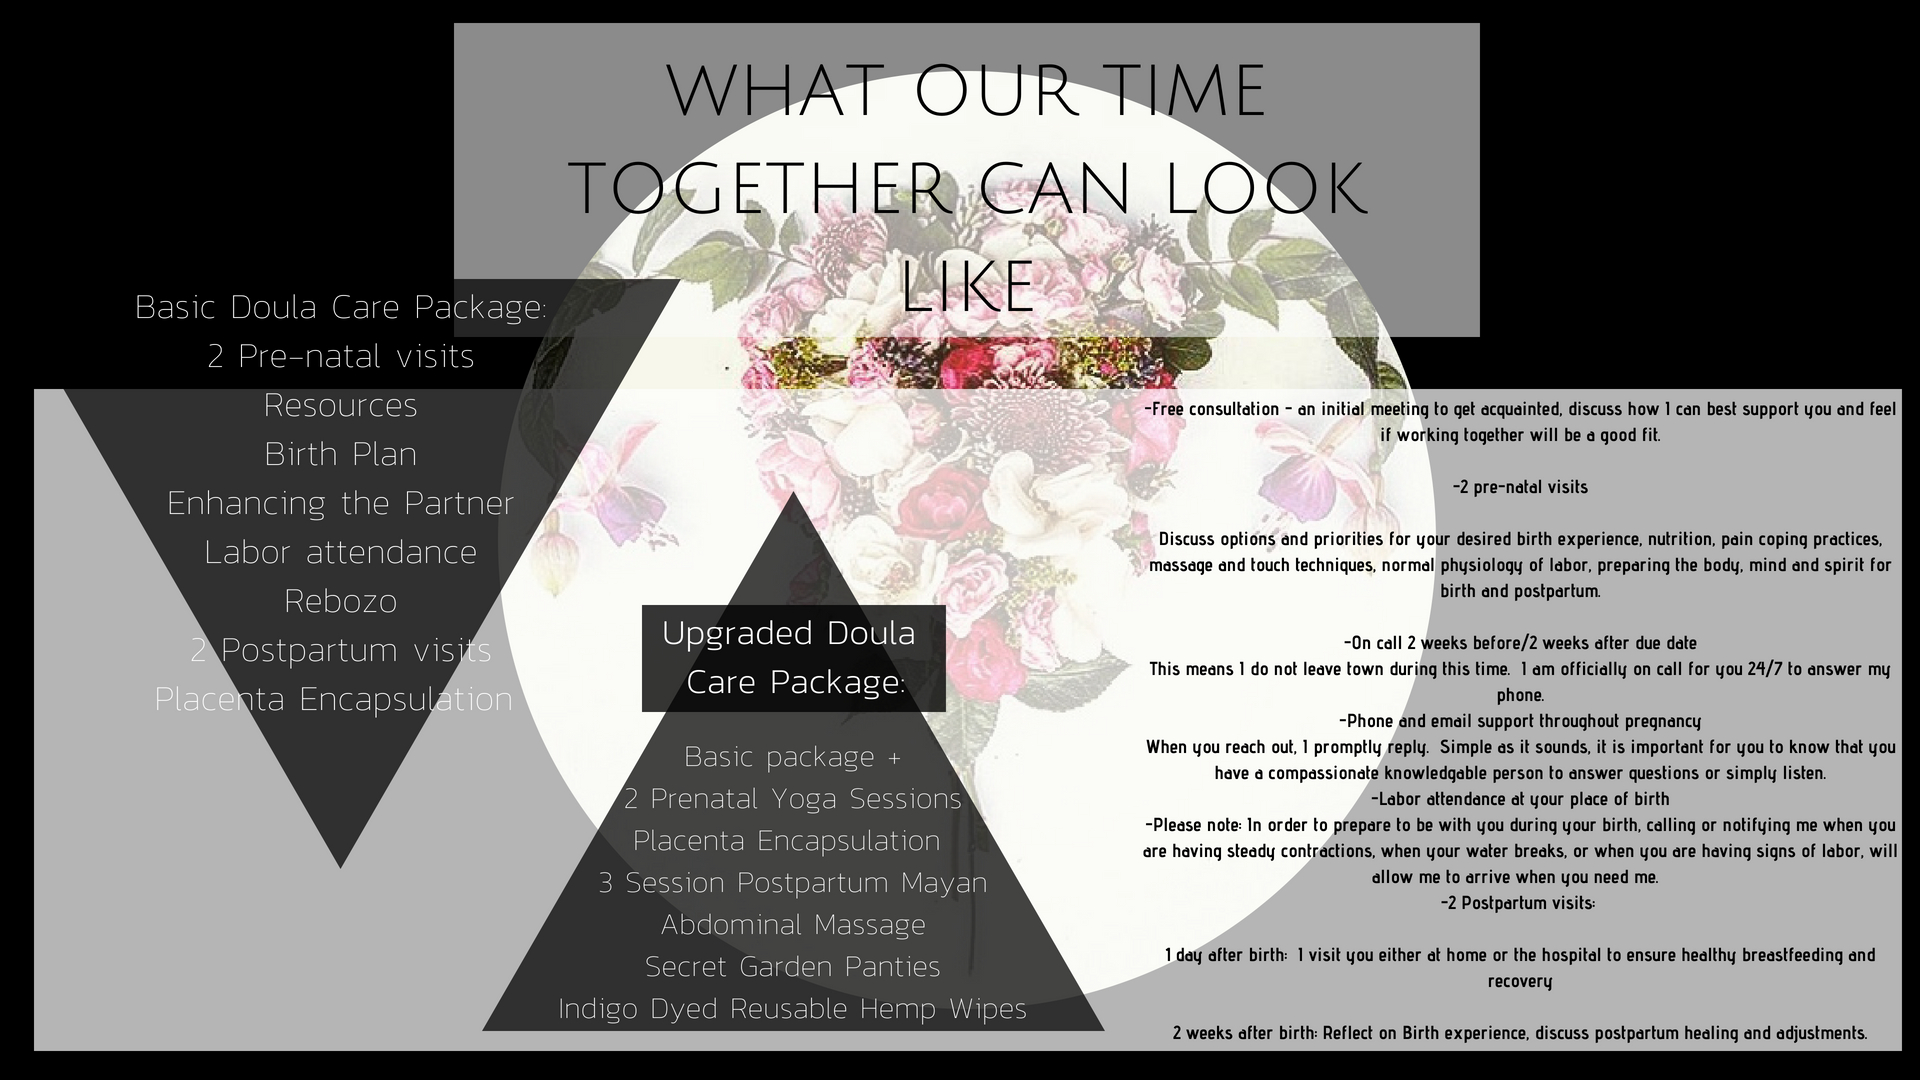 WHAT OUR TIME TOGETHER CAN LOOK LIKEFree consultation - an initial meeting to get acquainted, discuss how I can best support you and feel if working together will be a good fit.2 pre-natal visitsDiscuss options and p (3).jpg